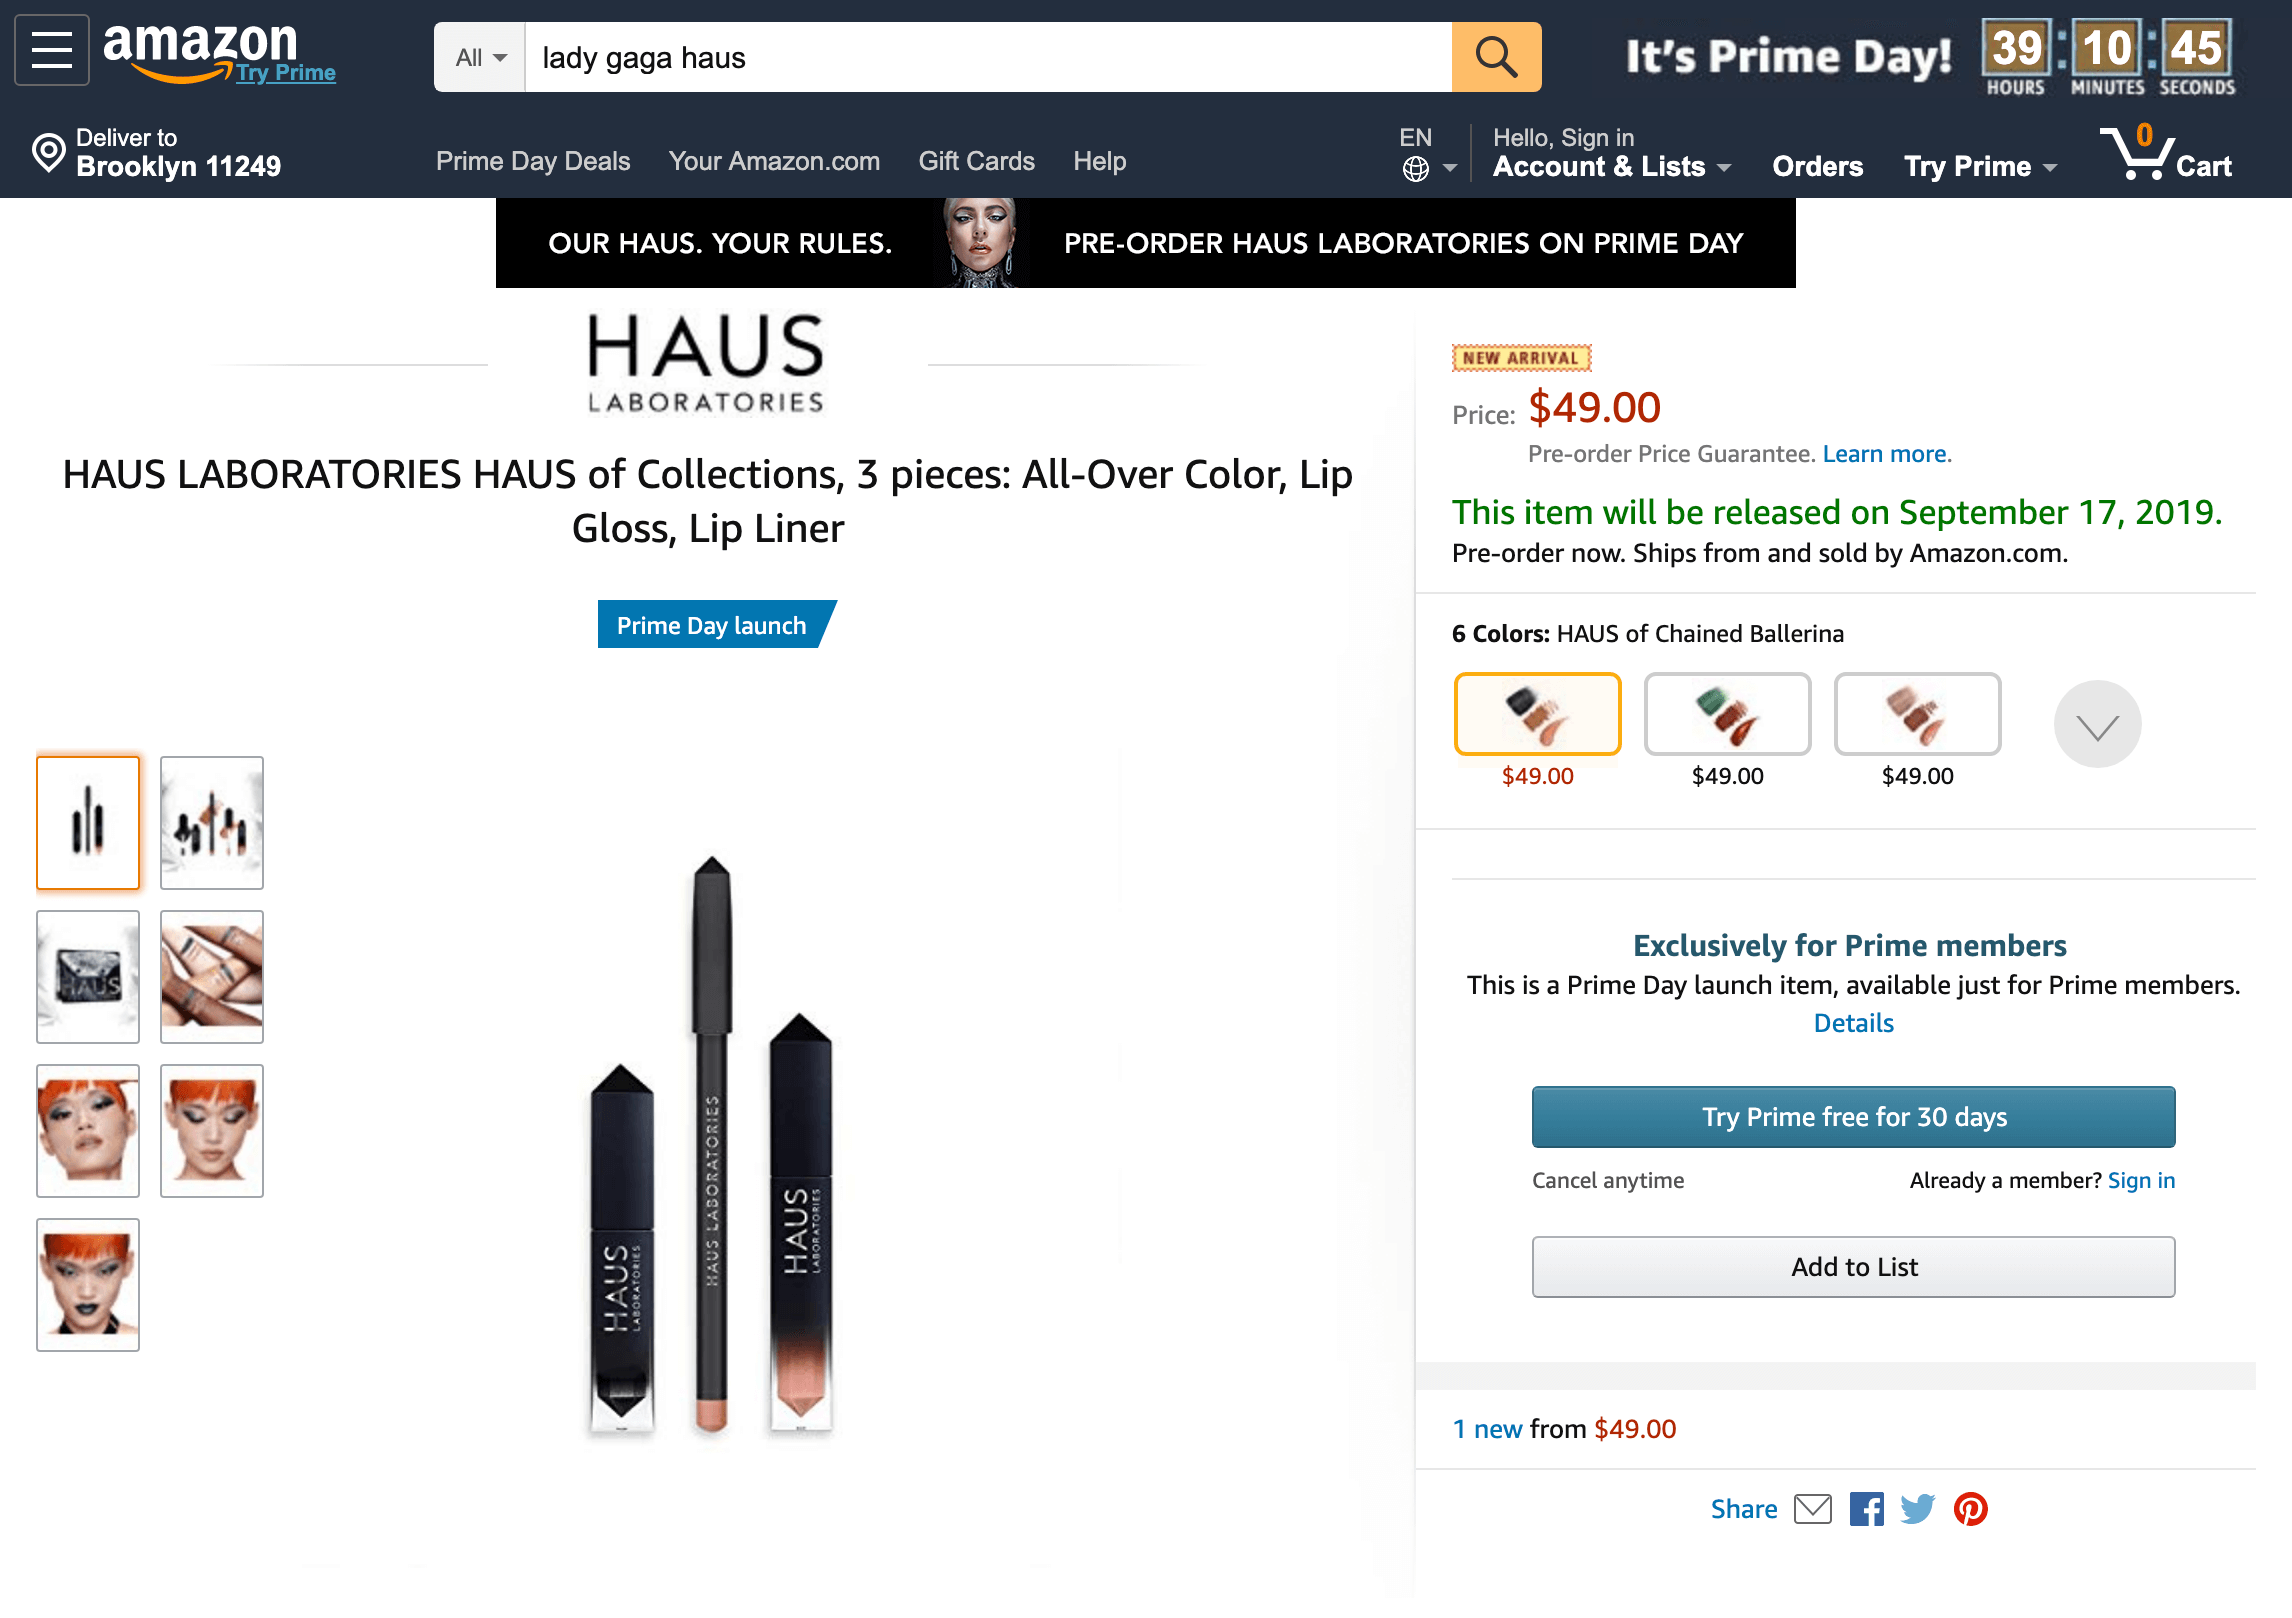 Haus Laboratories launch on Prime Day